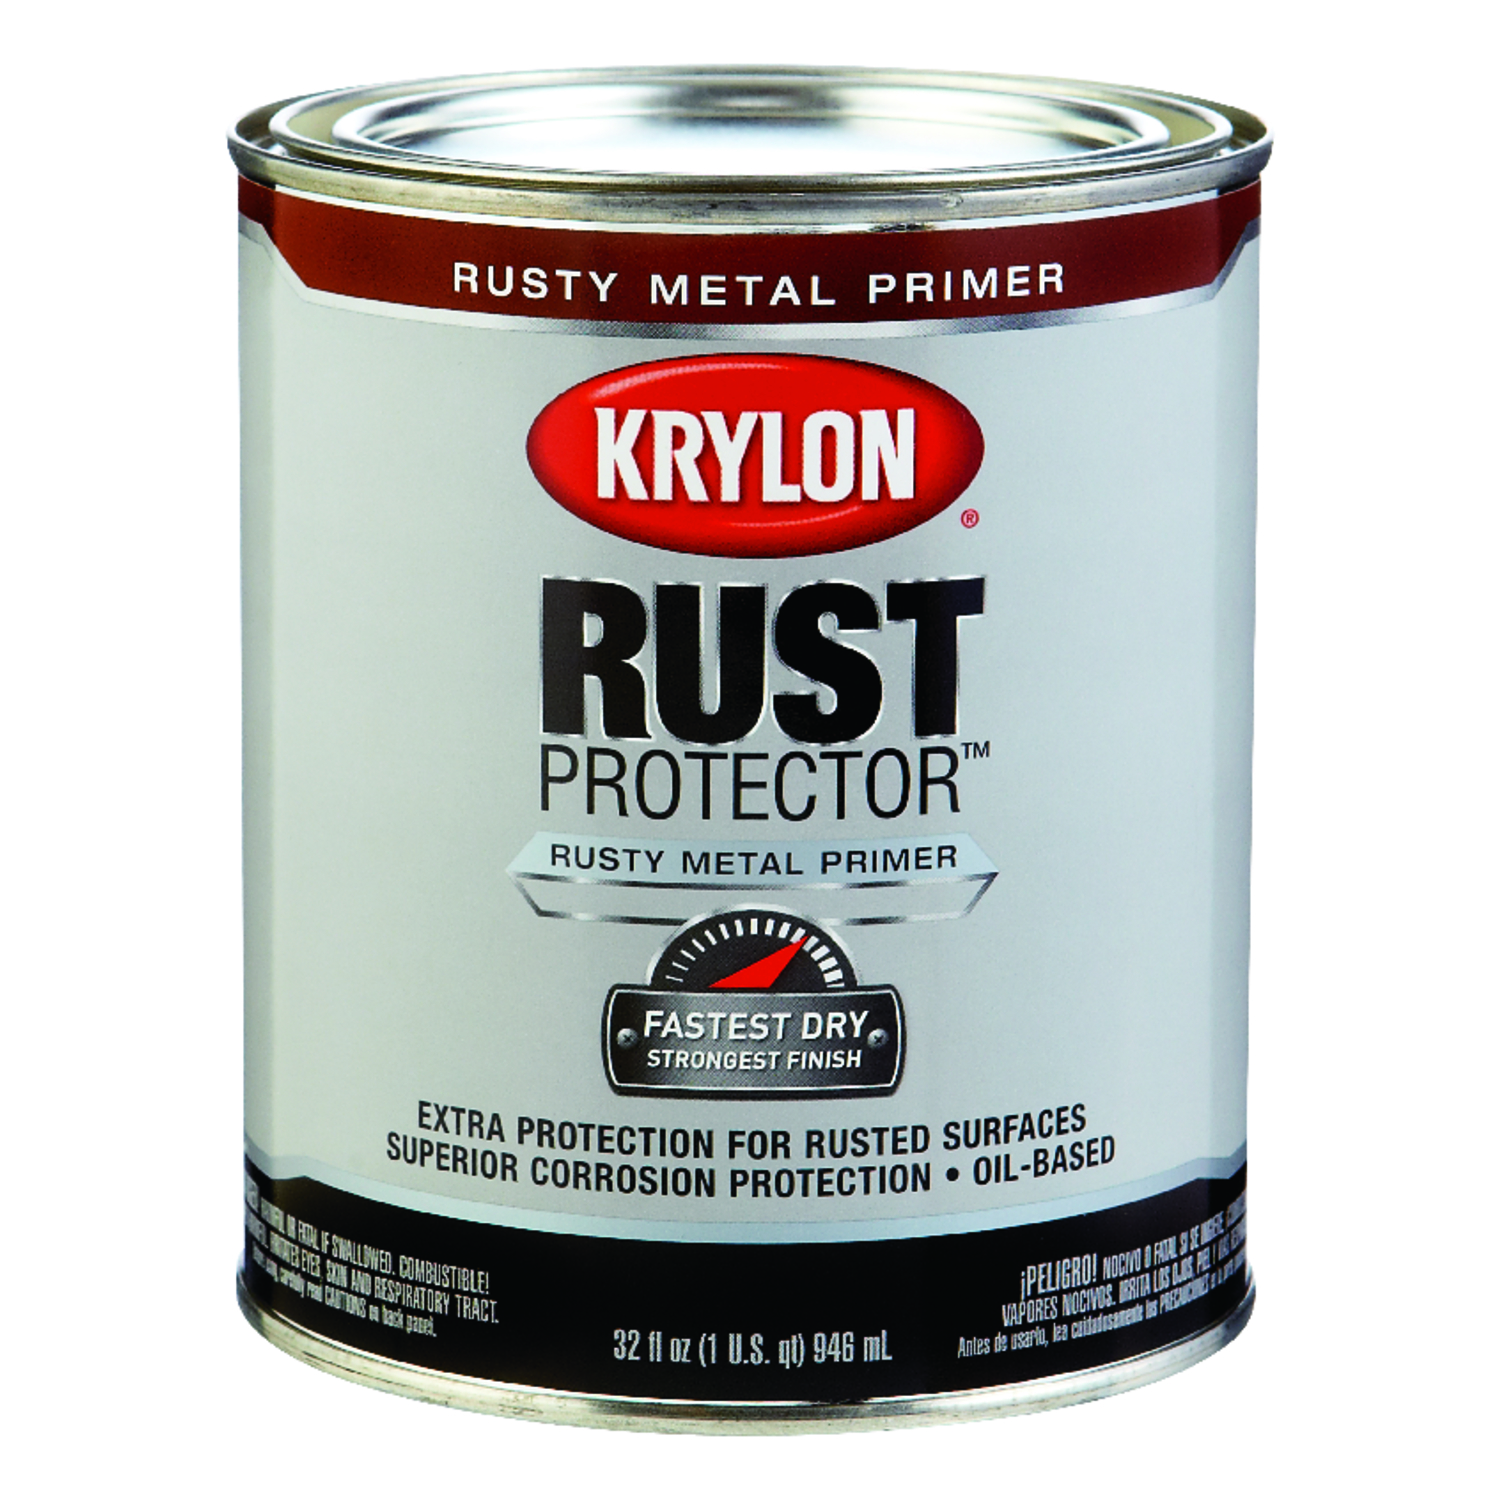 Krylon  Rust Protector  Rusty Red  Oil-Based  Primer and Sealer  For Rusty Metals 1 qt. Smooth